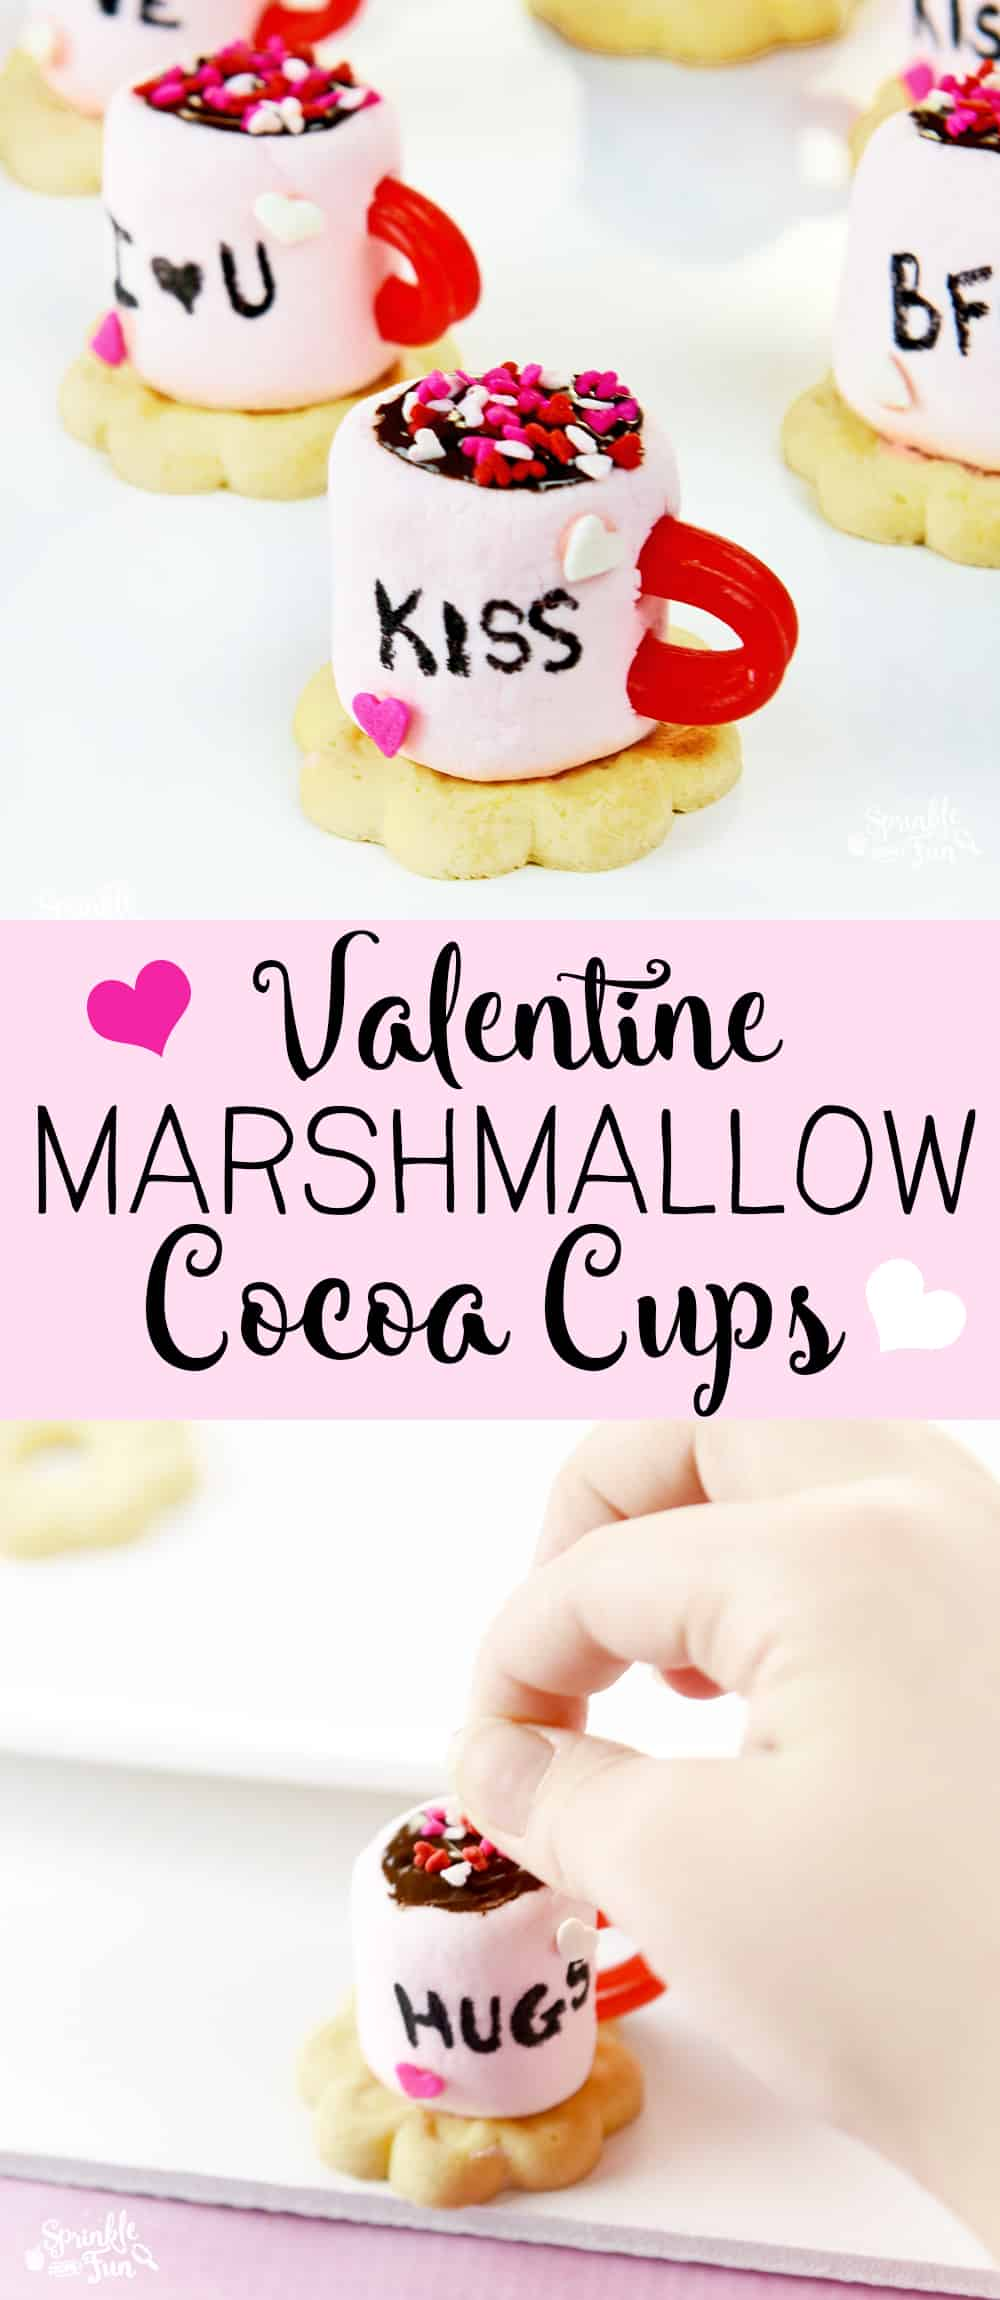 These adorable Valentine Marshmallow Cocoa Cups are sure to be a hit with the kids on Valentine's Day!